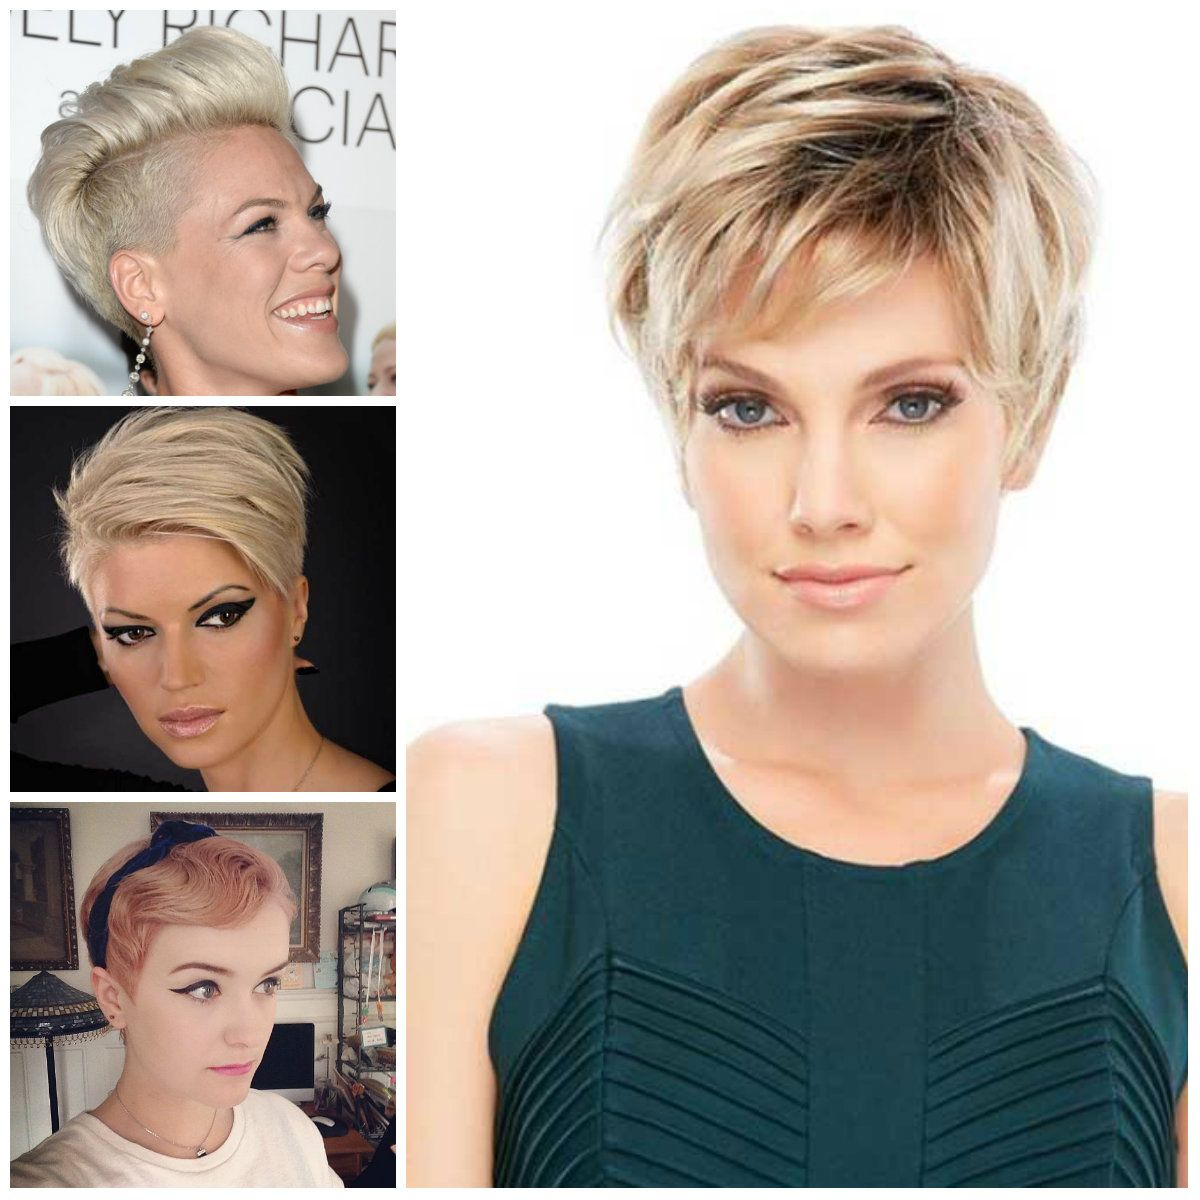 short hairstyles for 2017 - wow - image results | hairstyles